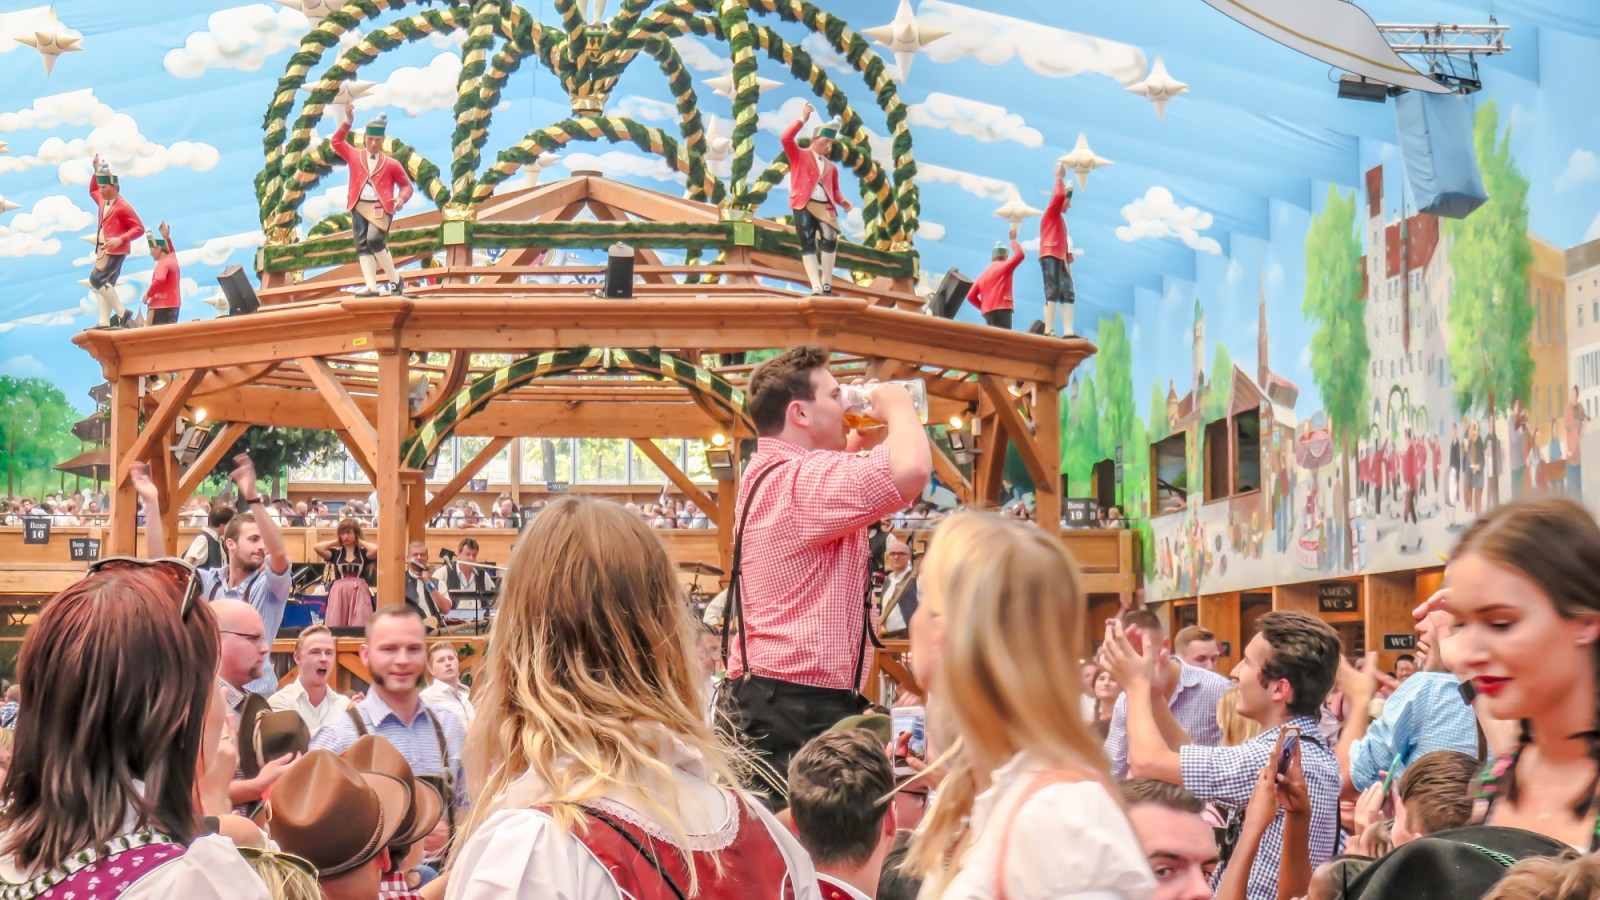 Do This, Not That at Oktoberfest in Munich, Germany | Dos and don'ts | When to go to Oktoberfest | What to expect at Oktoberfest | Oktoberfest travel tips | What to wear to Oktoberfest | How to dress for Oktoberfest | Dirndl and lederhosen | What to eat at Oktoberfest | Pretzel and beer festival